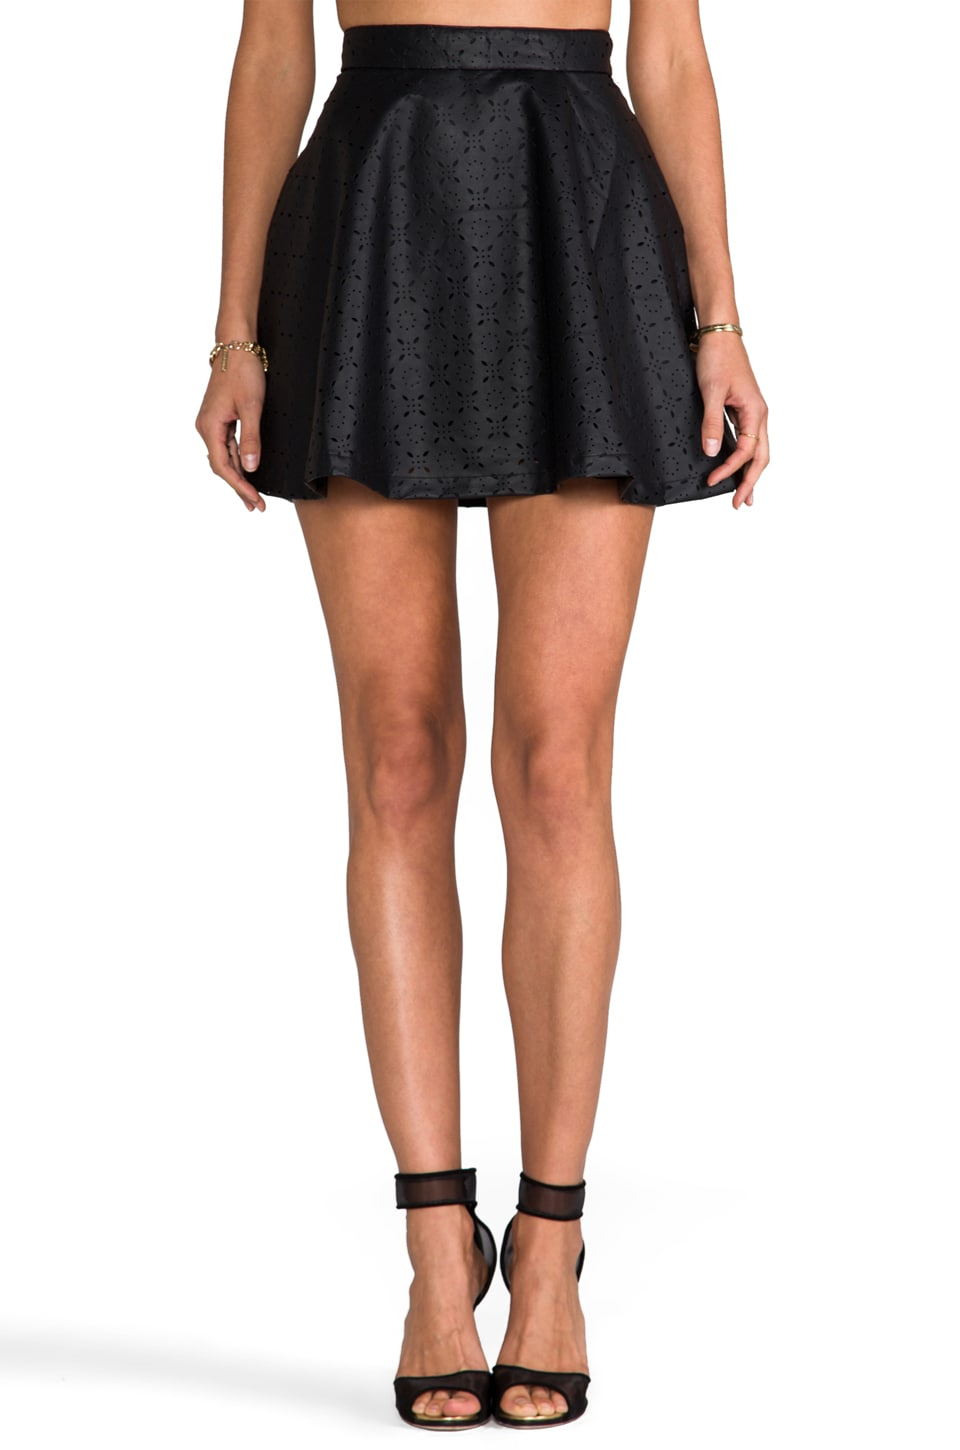 BB Dakota Jovianne Faux Leather Mini Skirt in Black